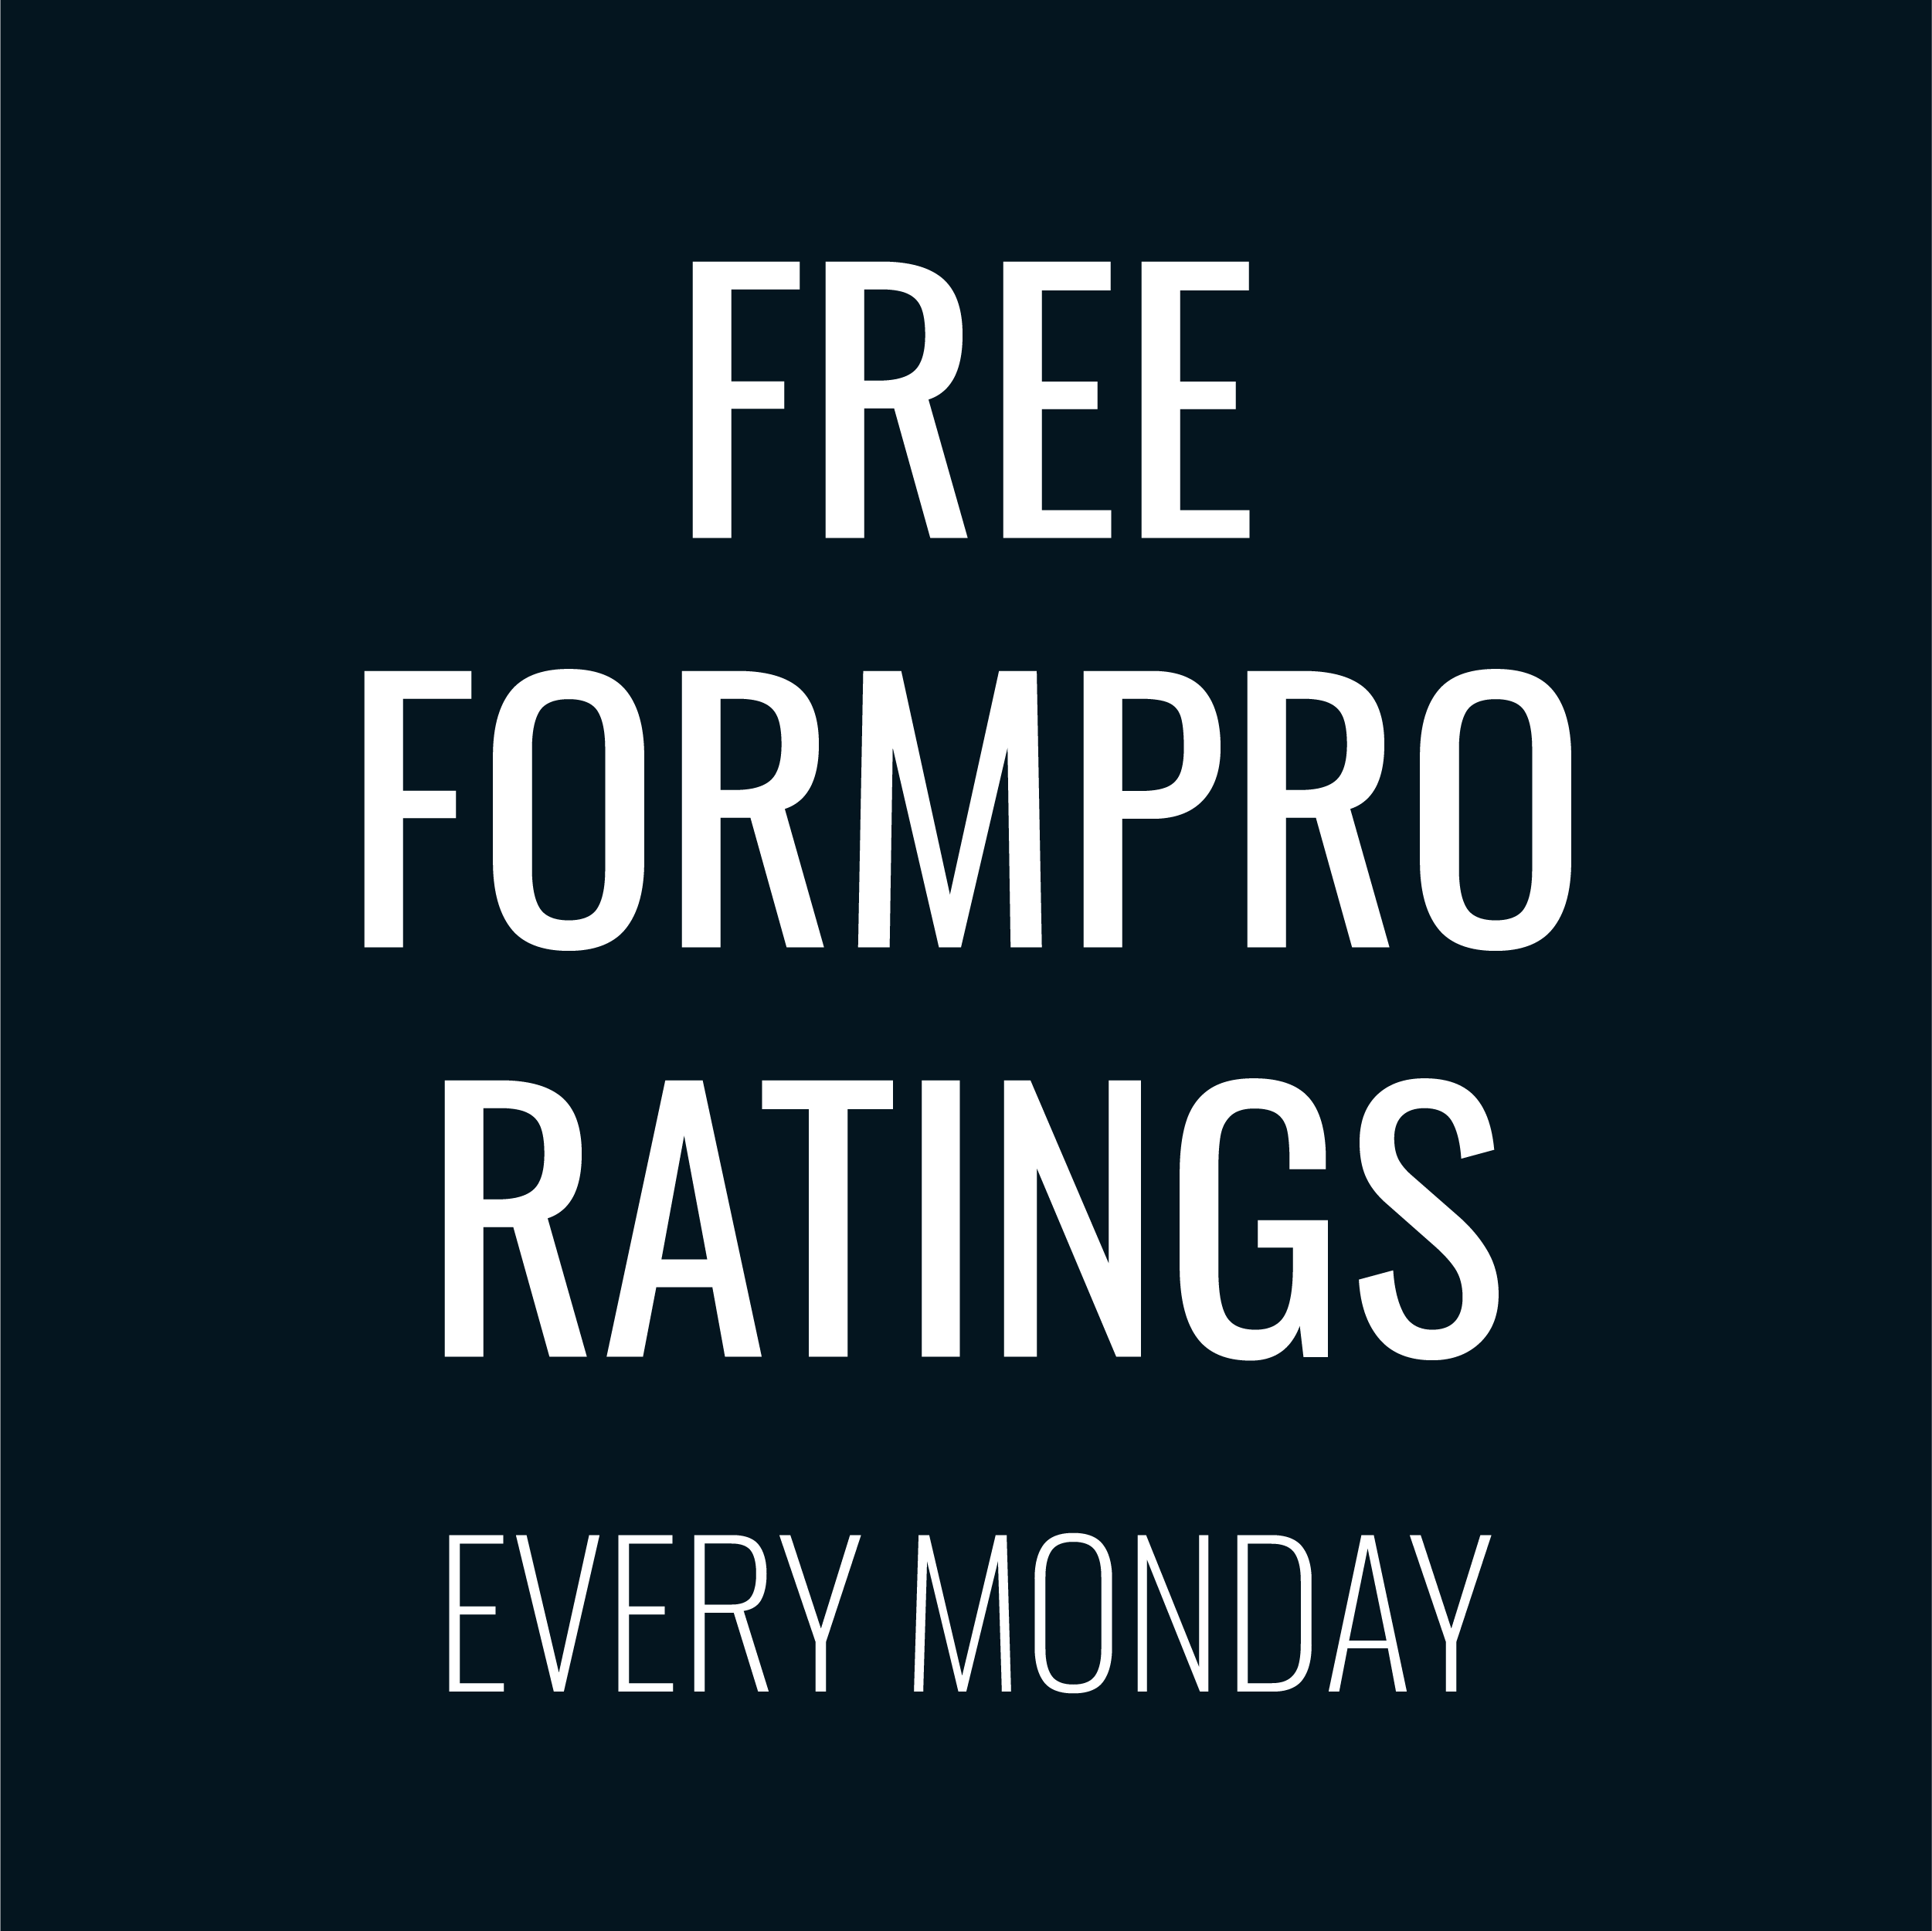 Free Greyhound Ratings Monday 22 April